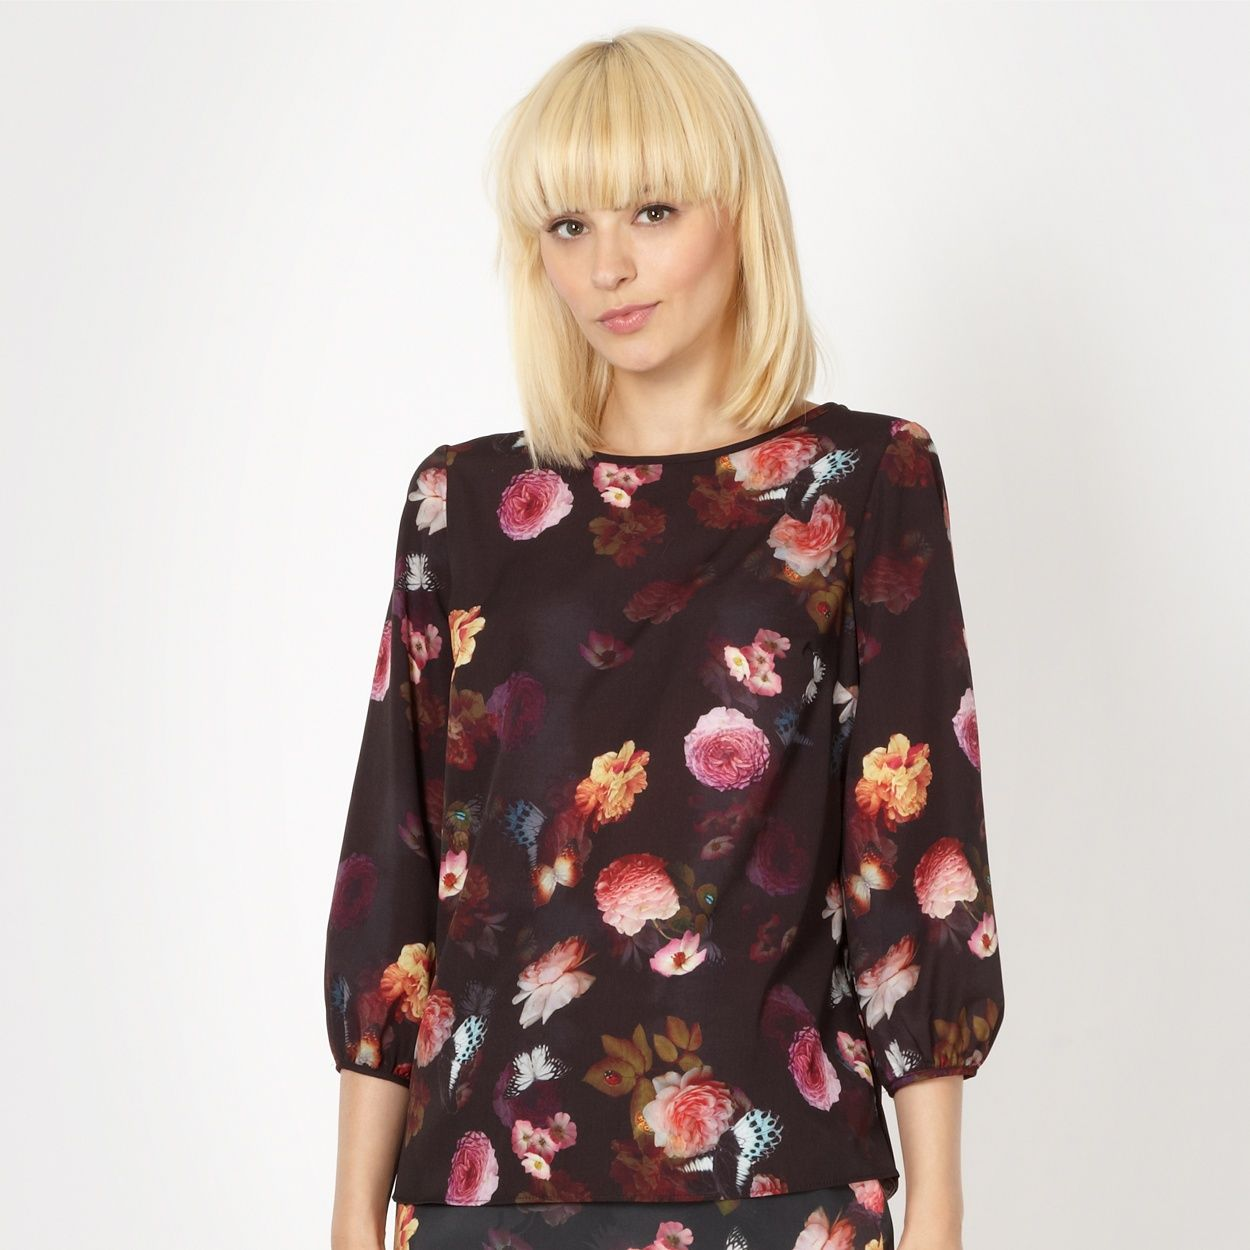 Red herring black flower and butterfly blouse at debenhams